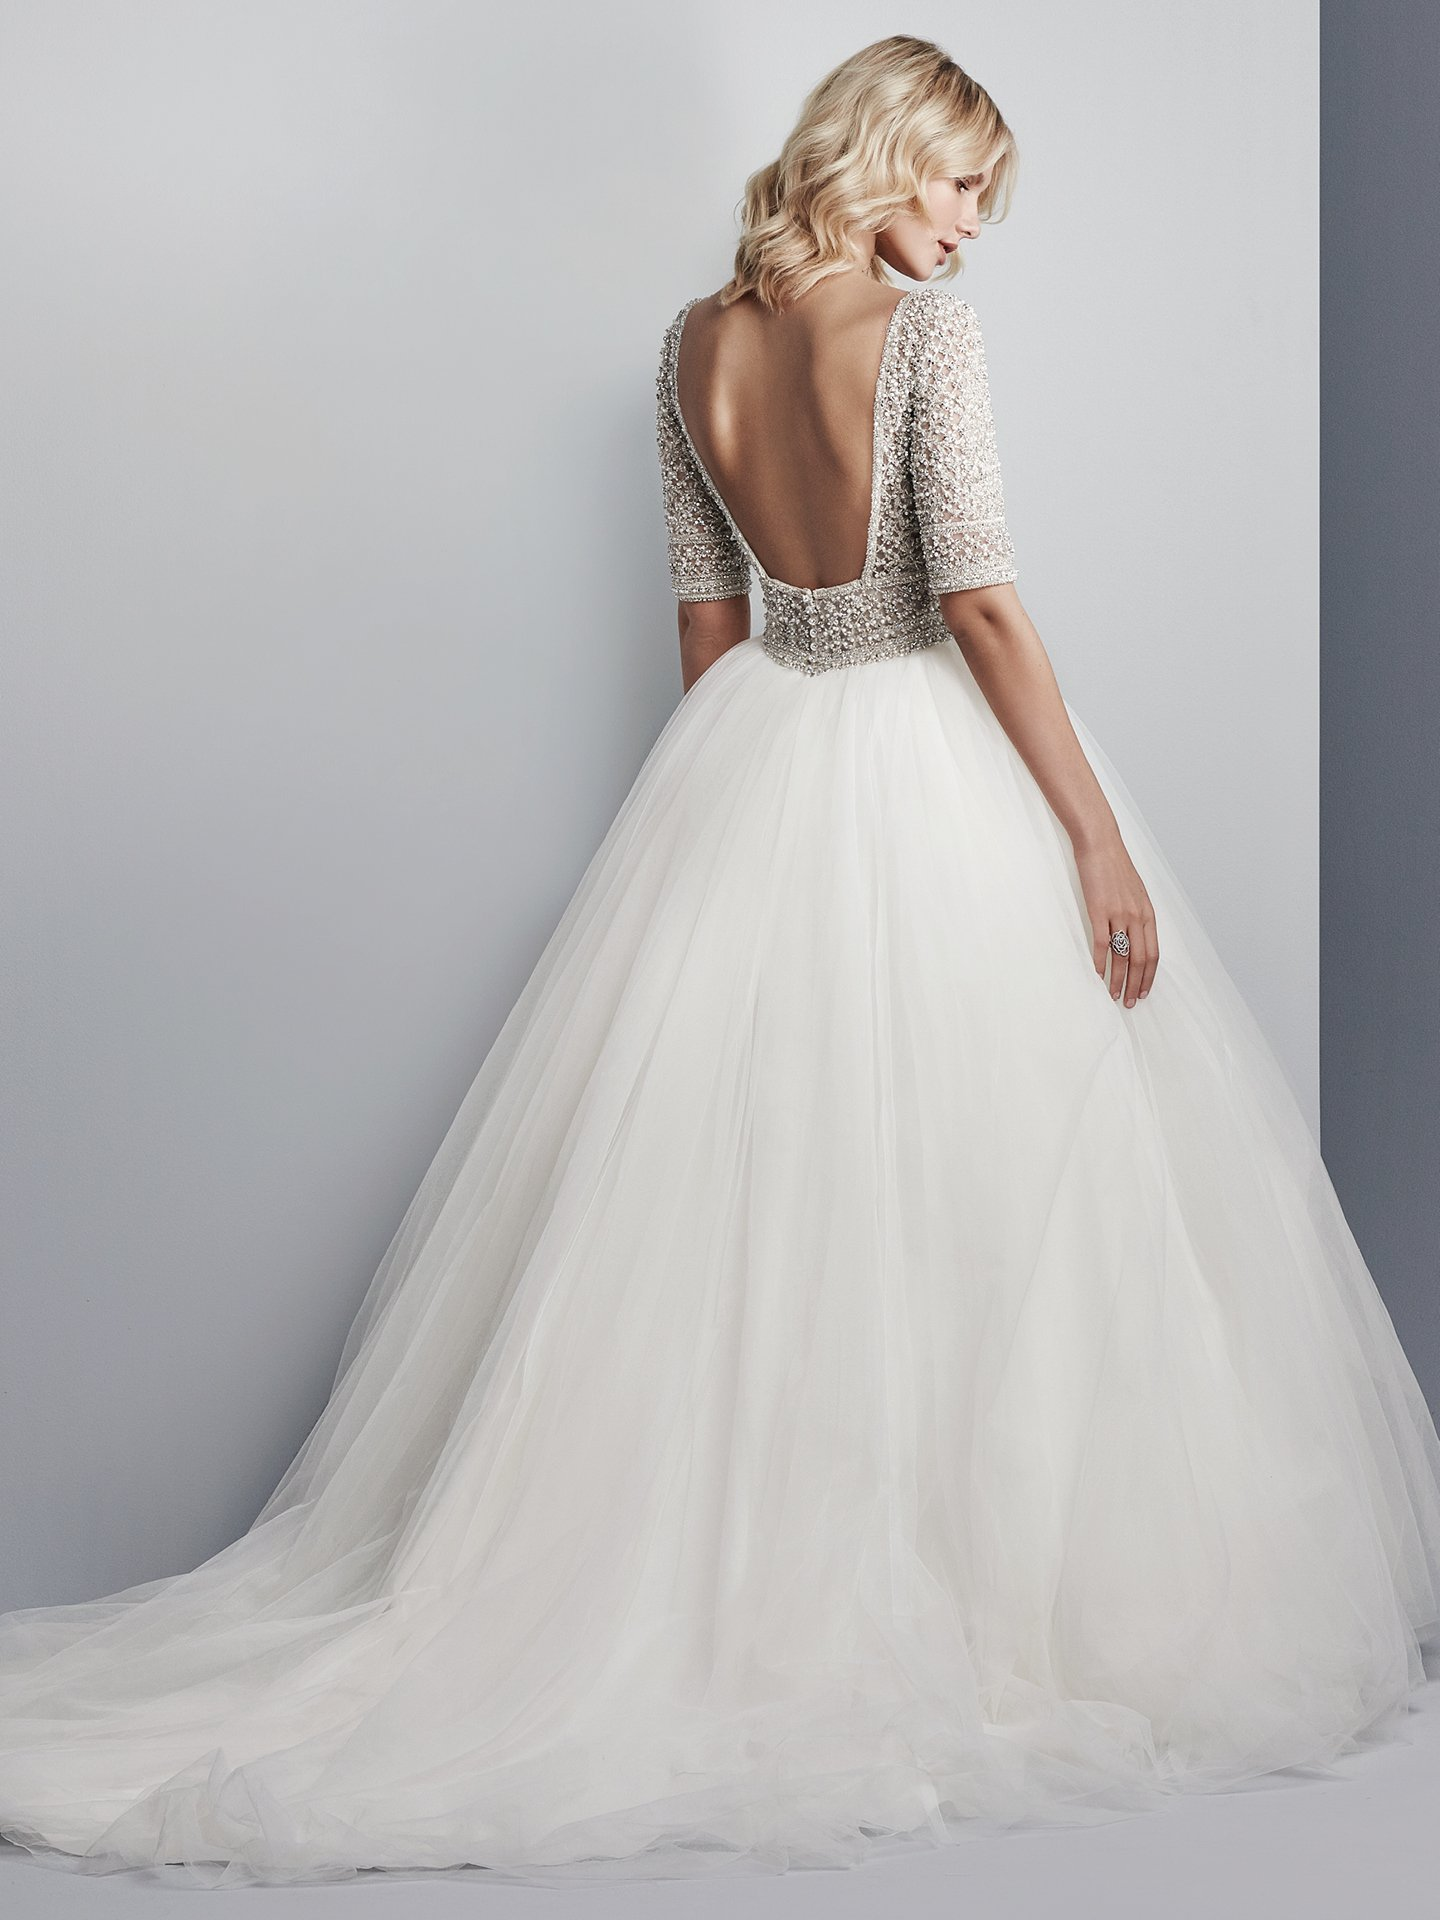 Allen by Sottero and Midgley. This show-stopping ballgown features a sheer bodice of Swarovski crystals and beading atop a voluminous tulle skirt. Complete with half-sleeves, an elegant illusion bateau over sweetheart neckline, and sexy open back. Finished with crystal buttons over zipper closure. Princess Ballgowns For Royal Weddings